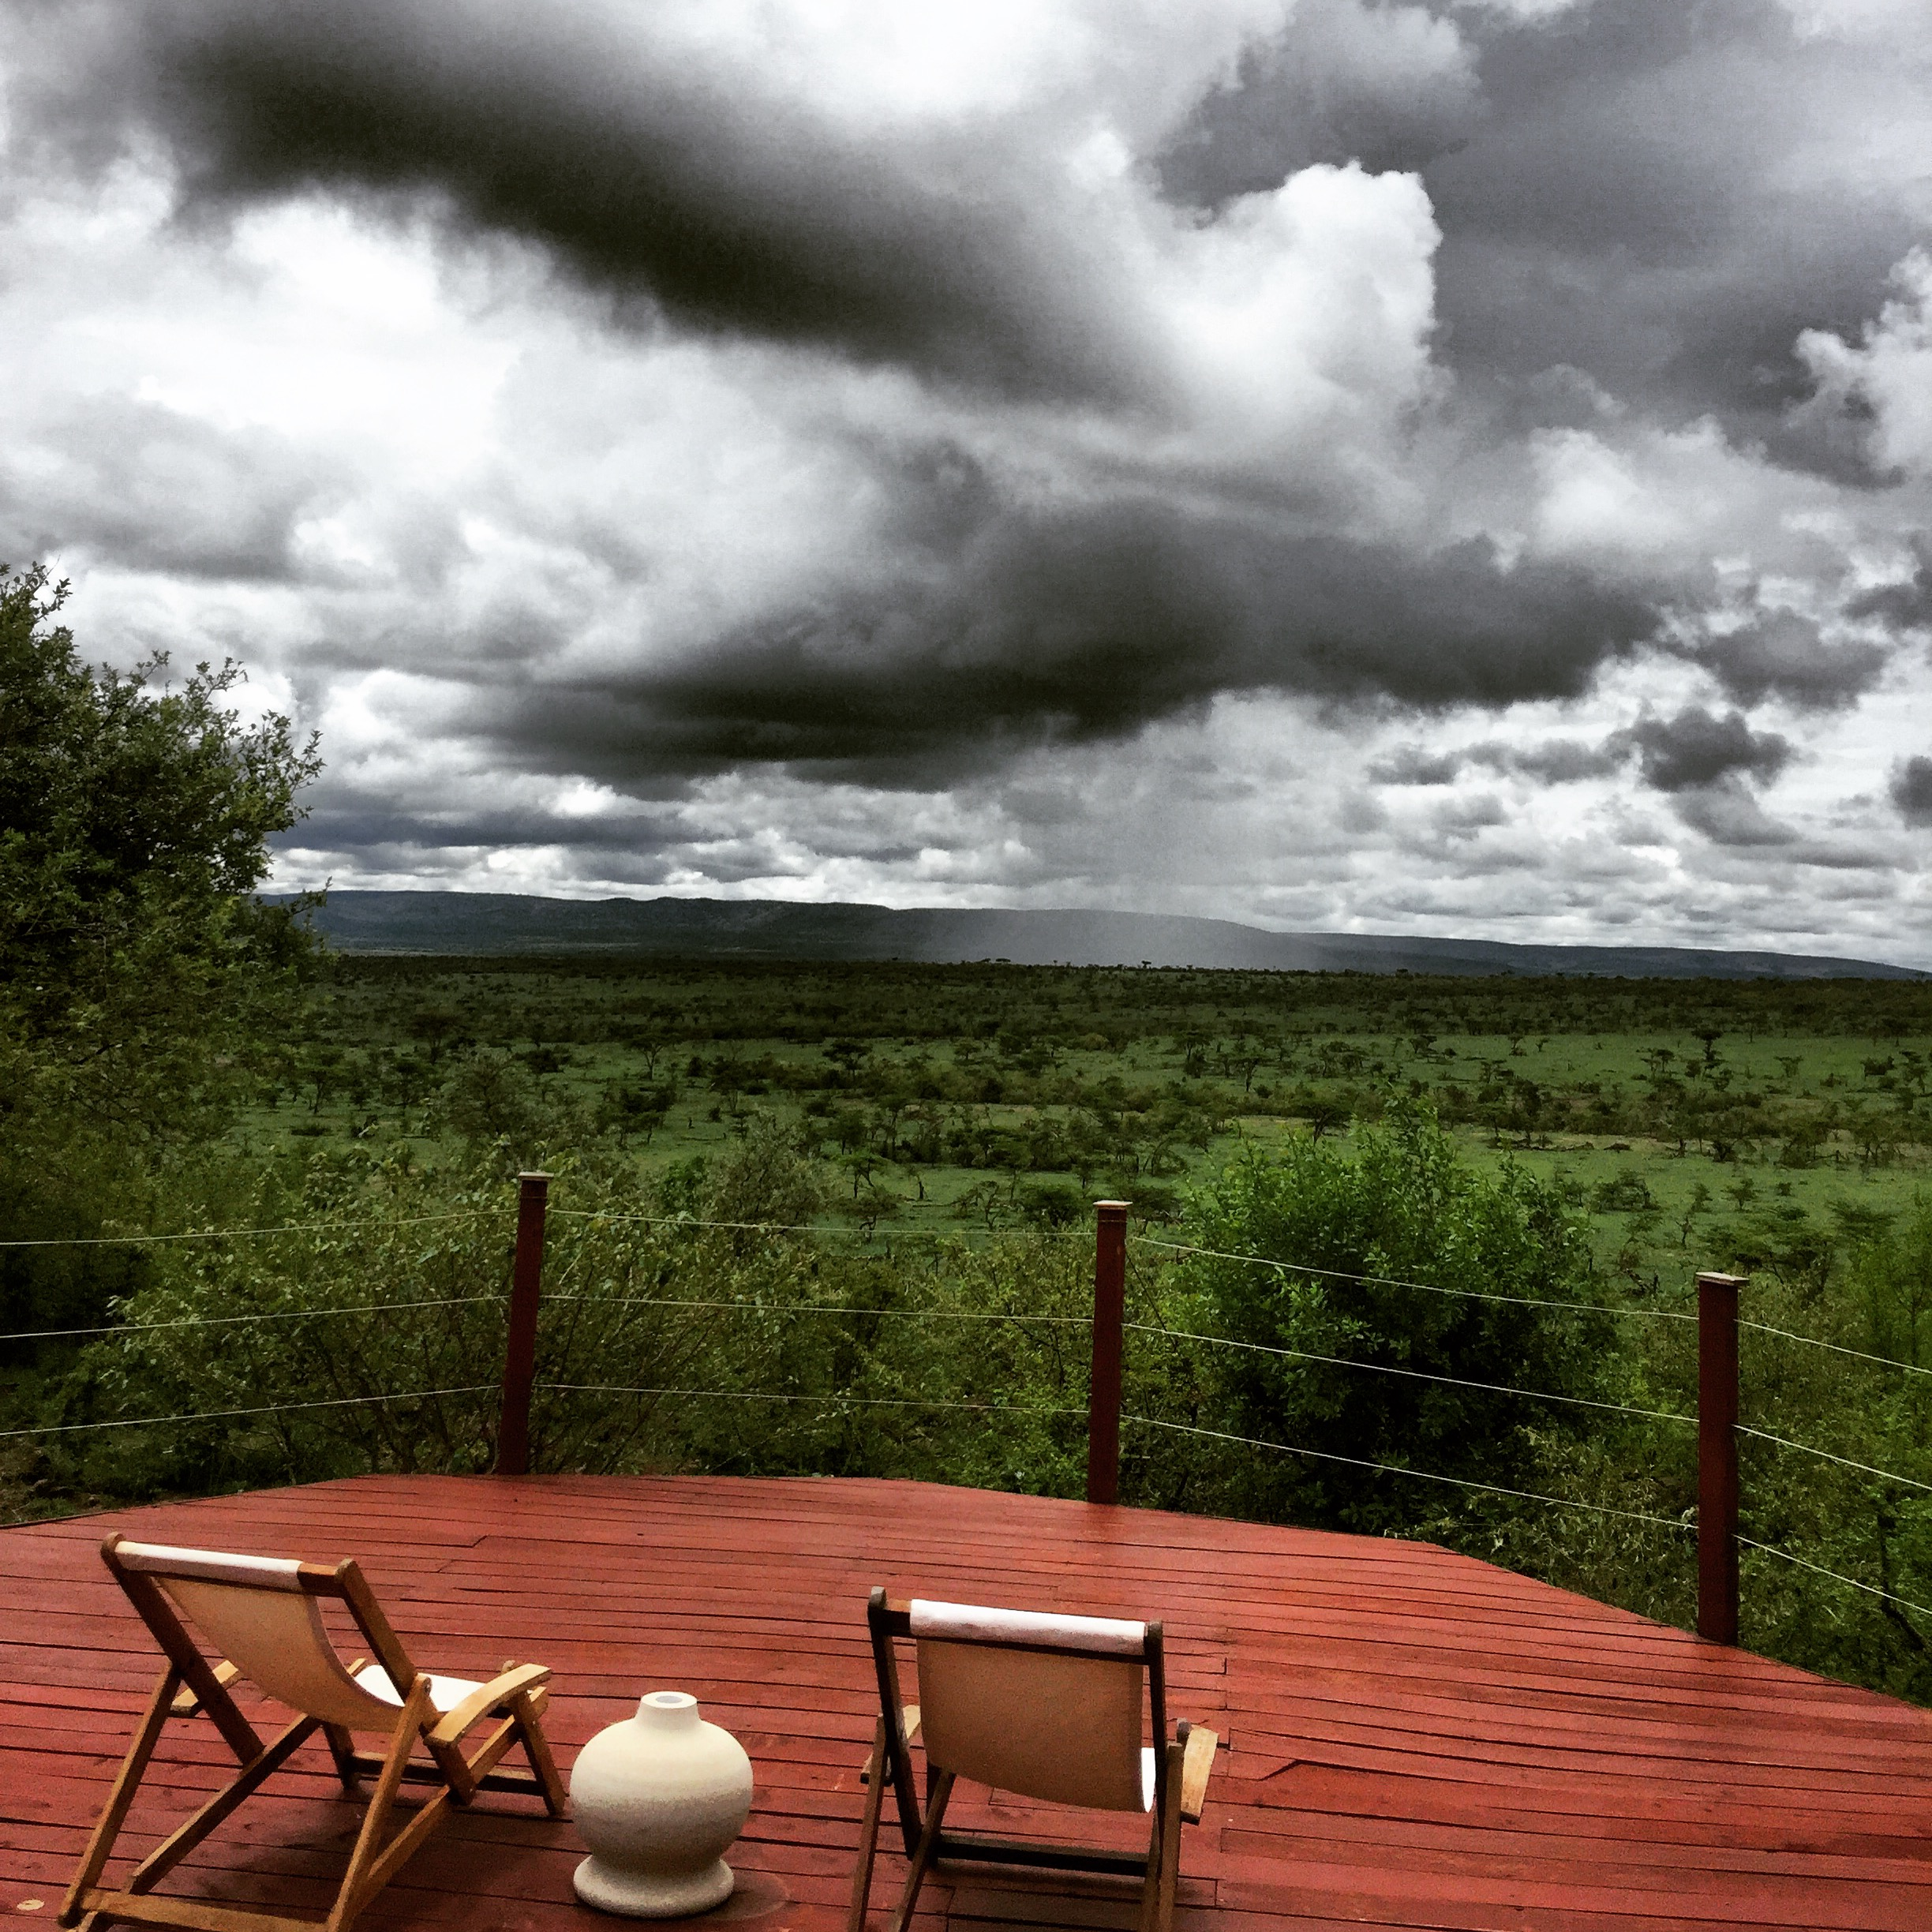 Rain, off in the distance.We were traveling in November, the rainy season here in The Mara - but it rained in beautiful patches (see above).